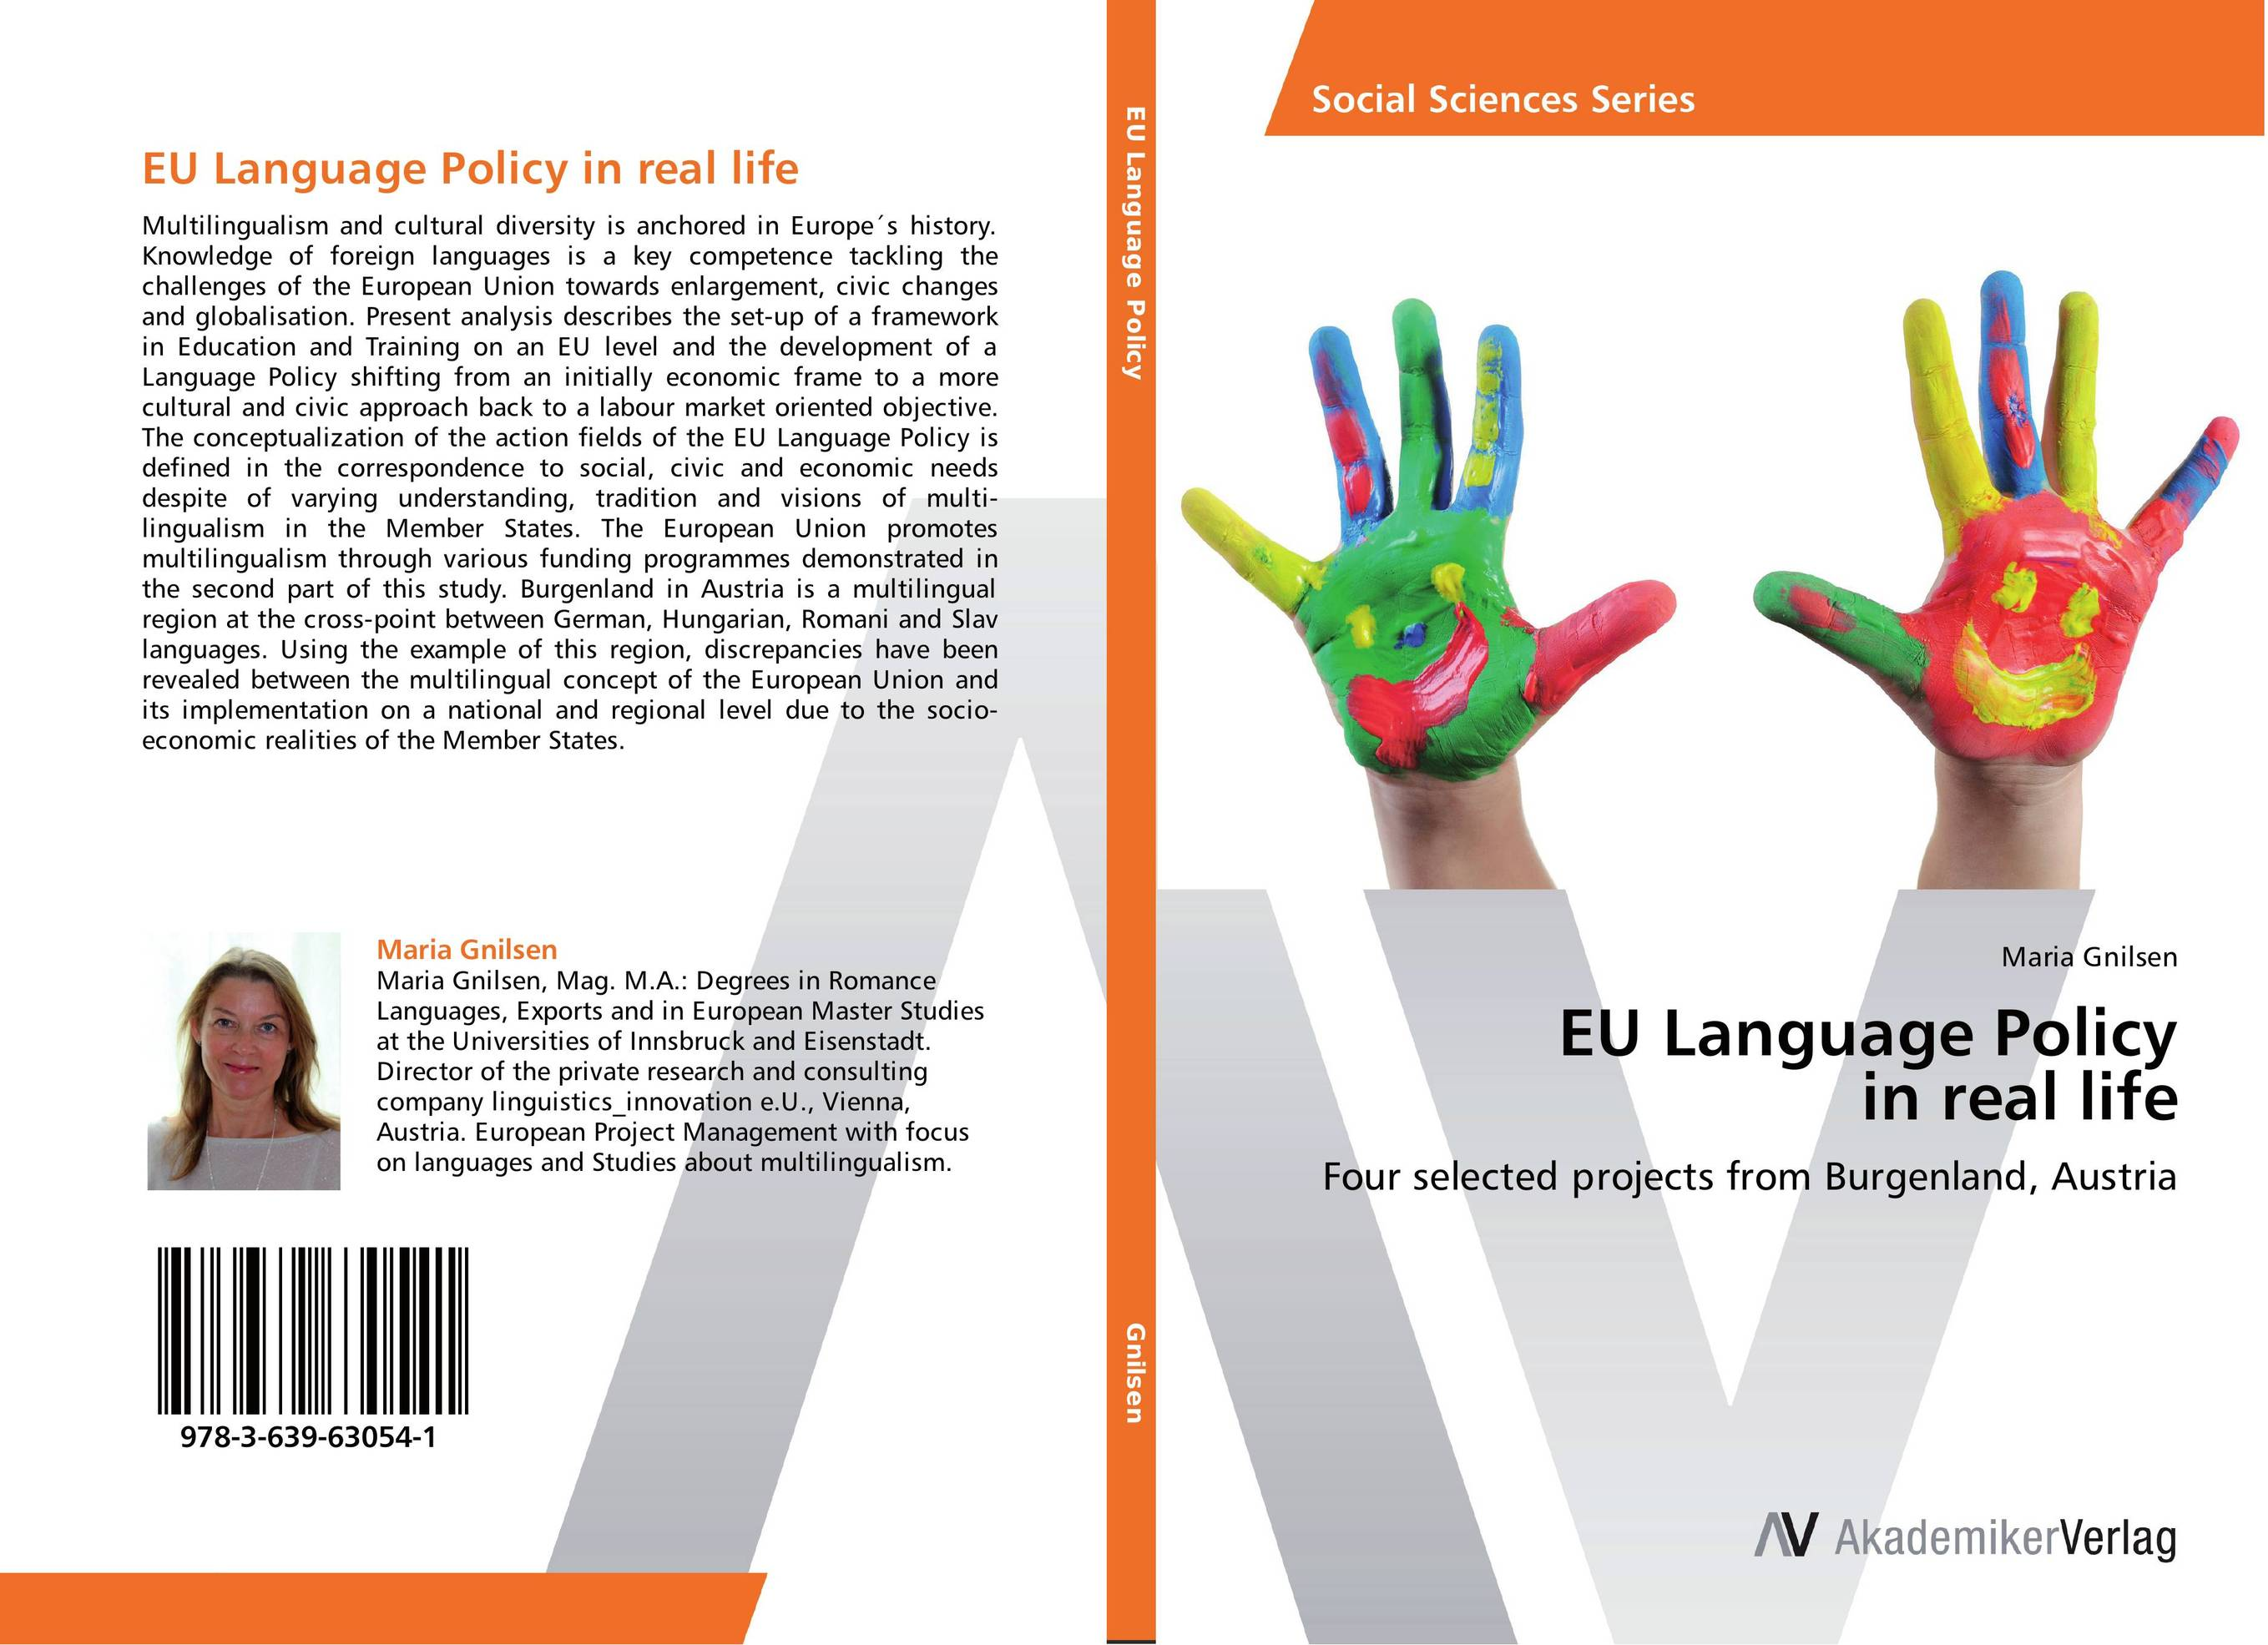 EU Language Policy in real life suh jude abenwi the economic impact of climate variability